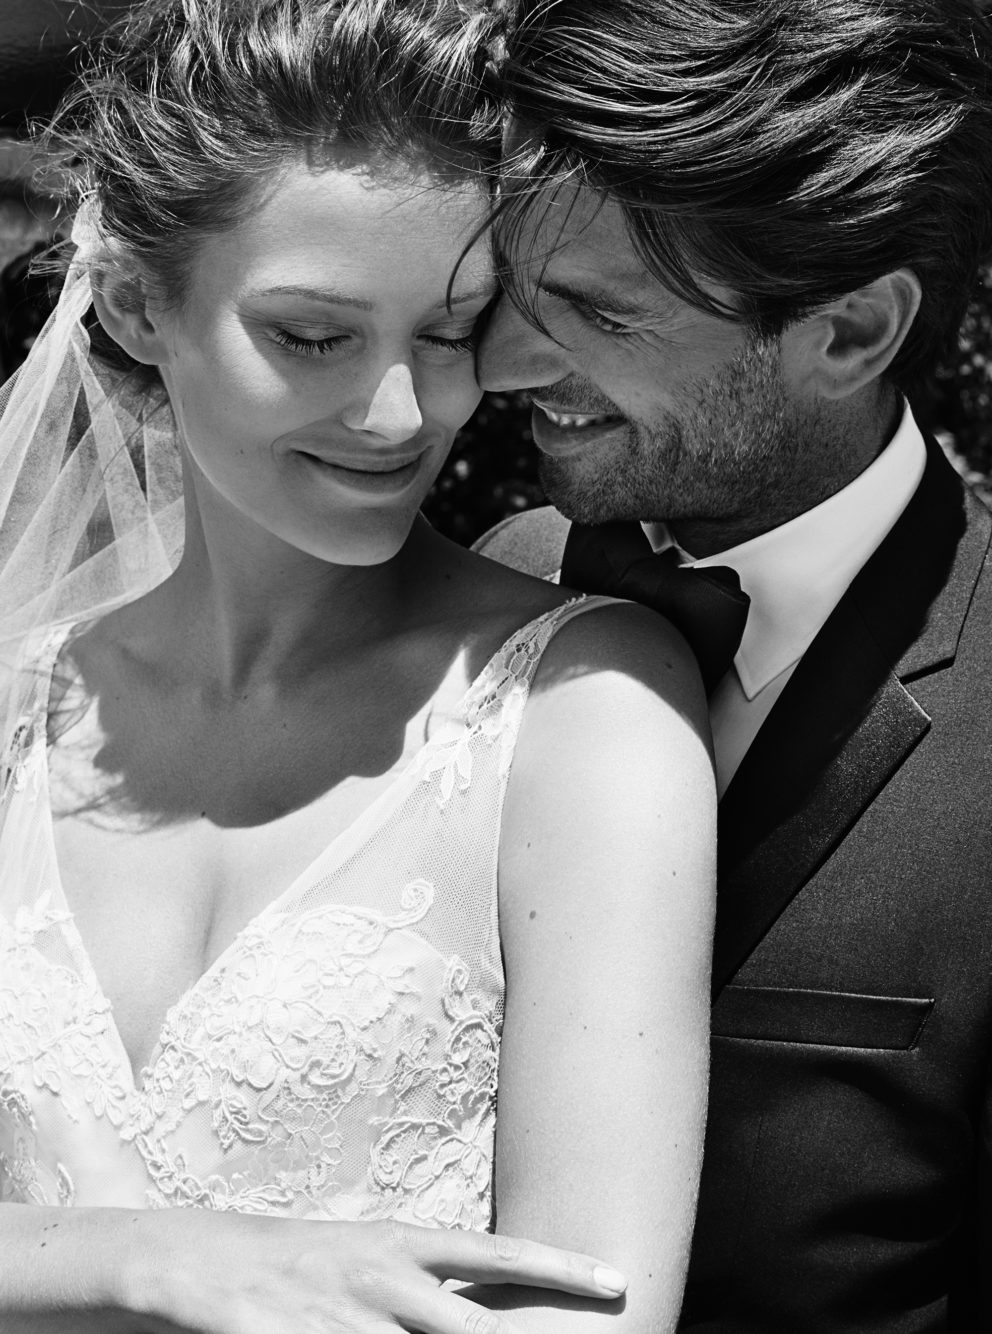 160609 0040 Yahoo Style Bridal Christian Hogstedt 199